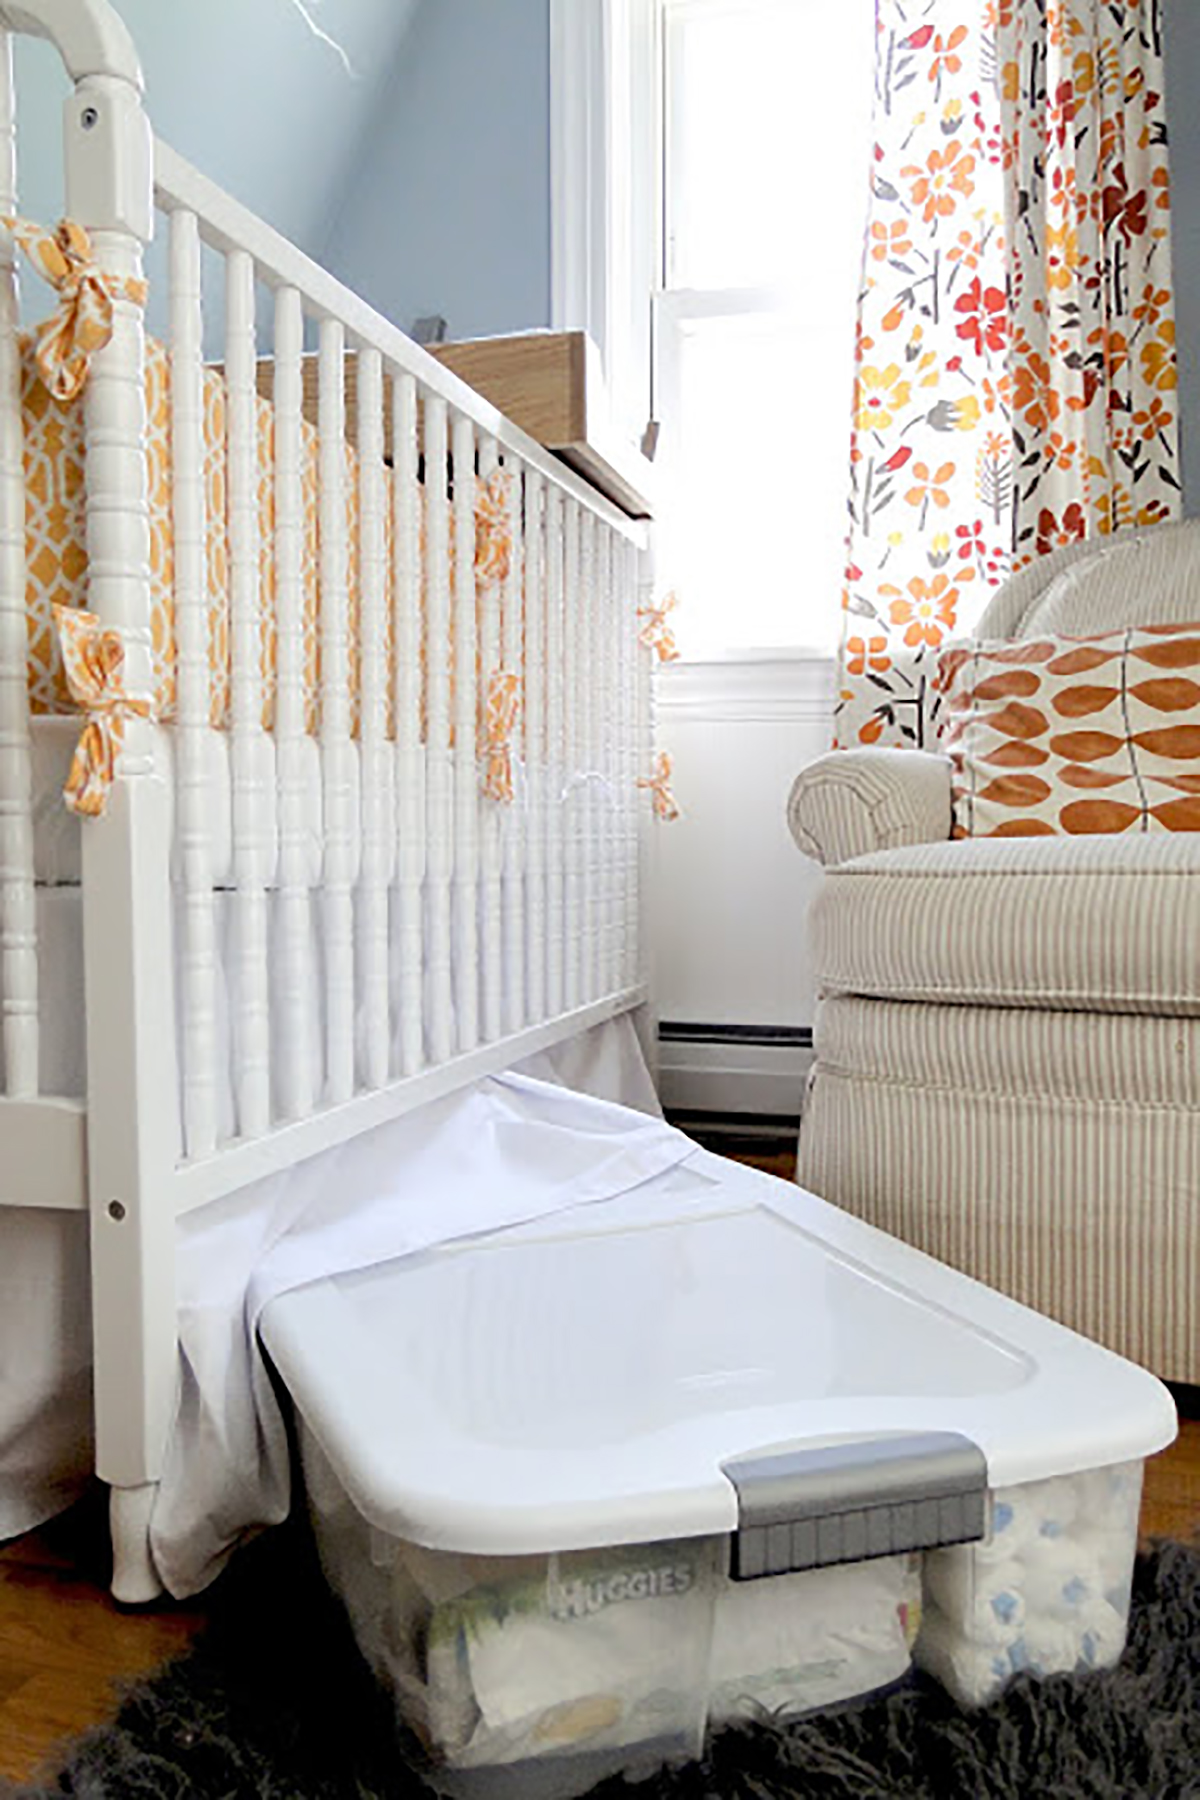 20 Best Baby Room Decor Ideas - Nursery Design, Organization, and ...